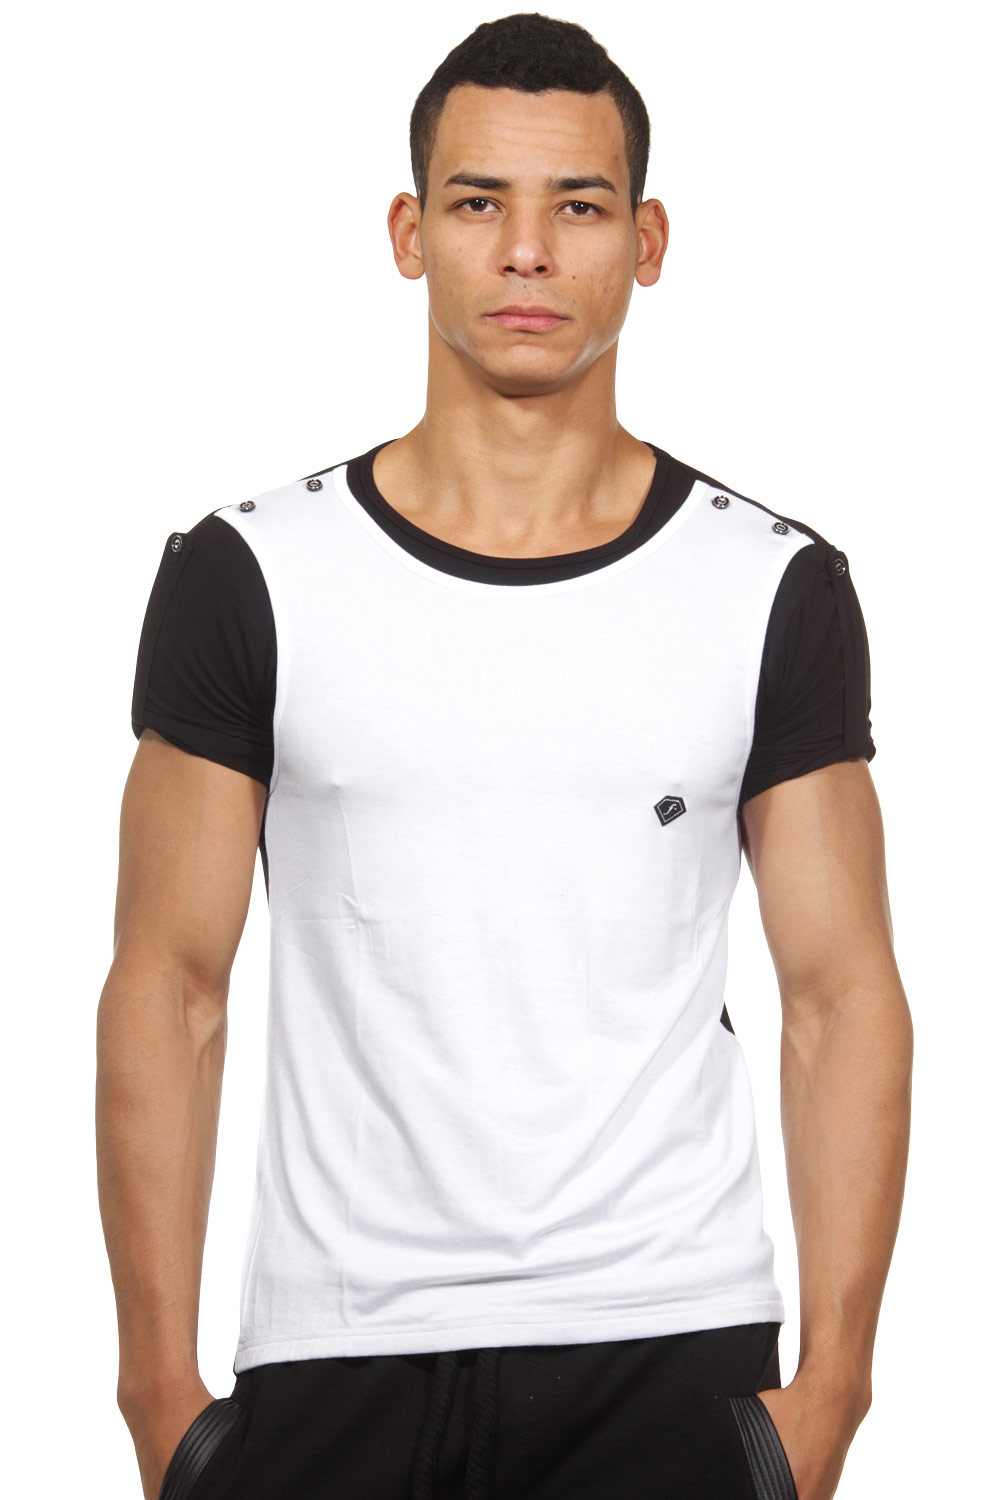 FIYASKO t-shirt r-neck slim fit at oboy.com